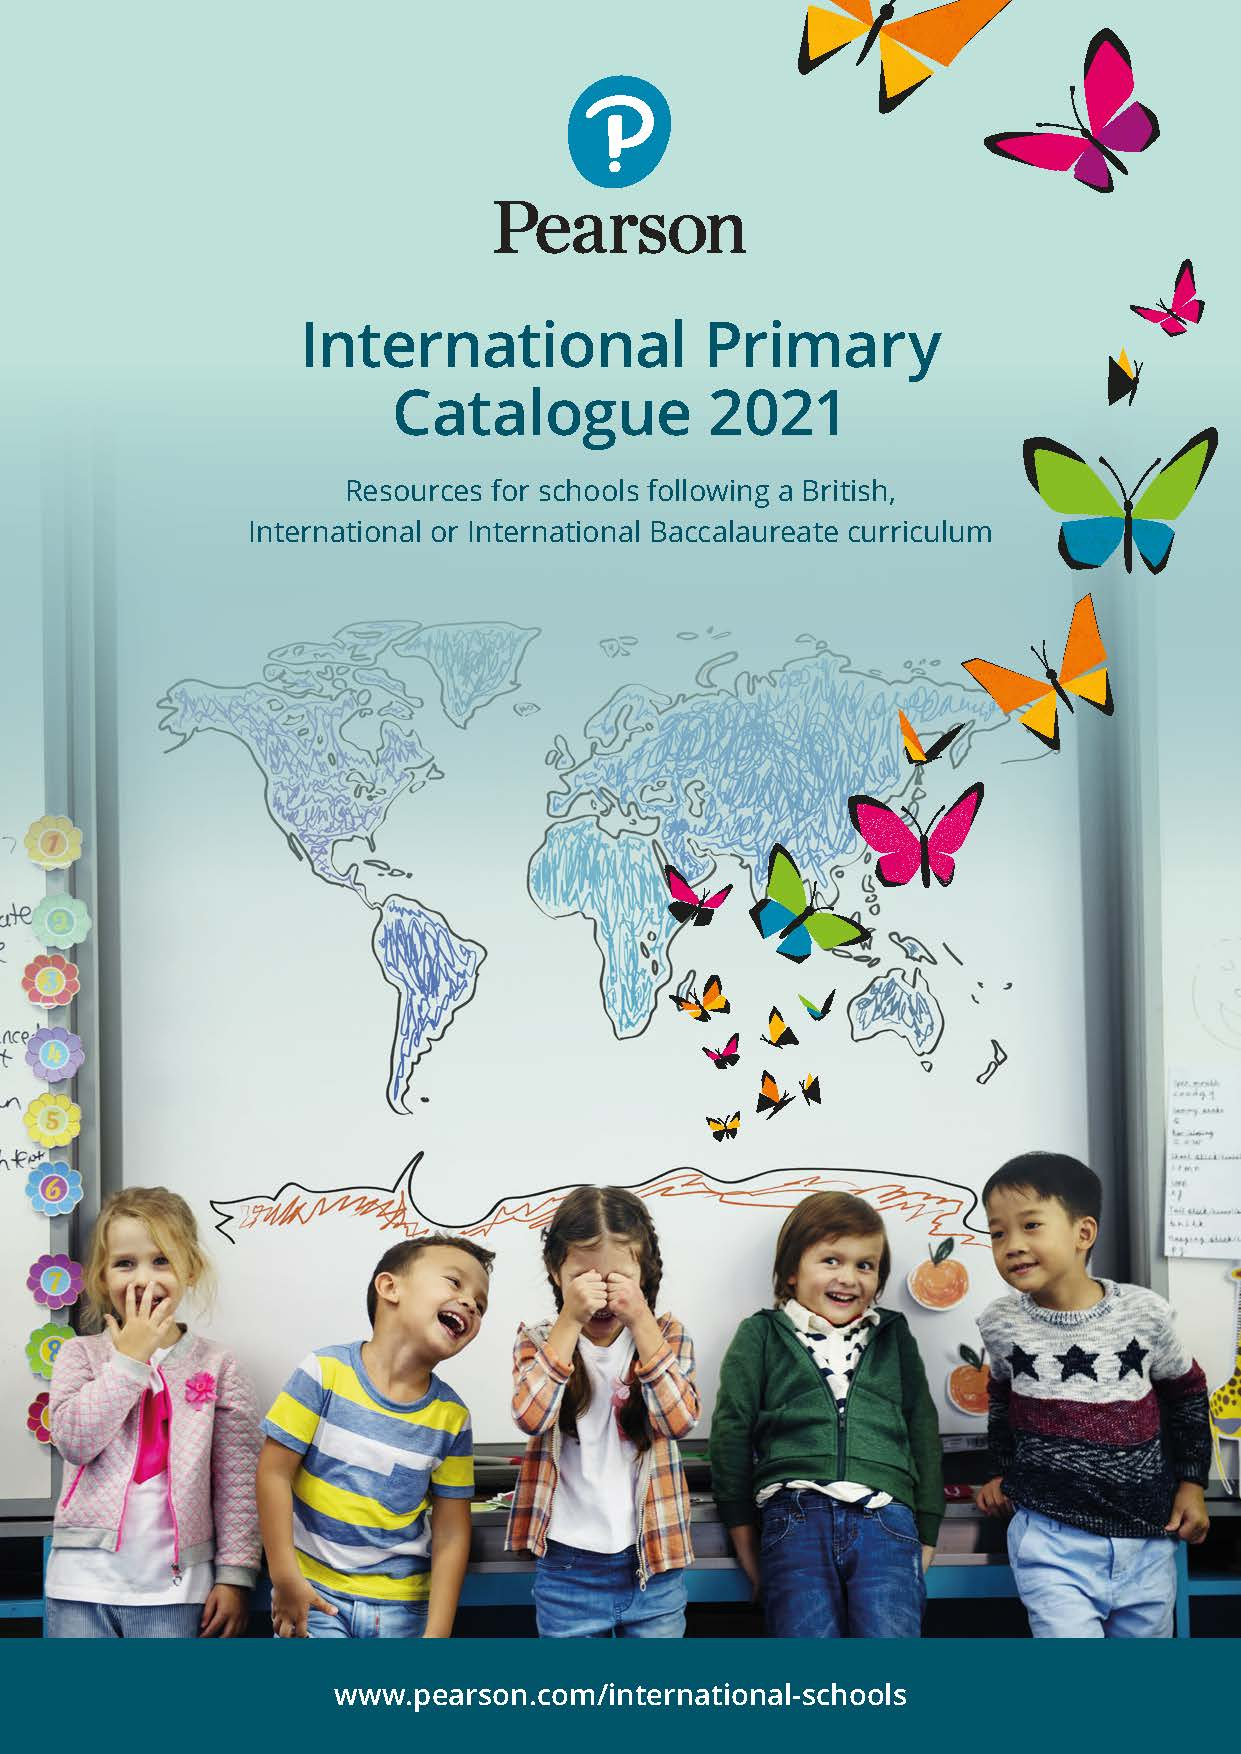 Download the primary 2021 catalogue